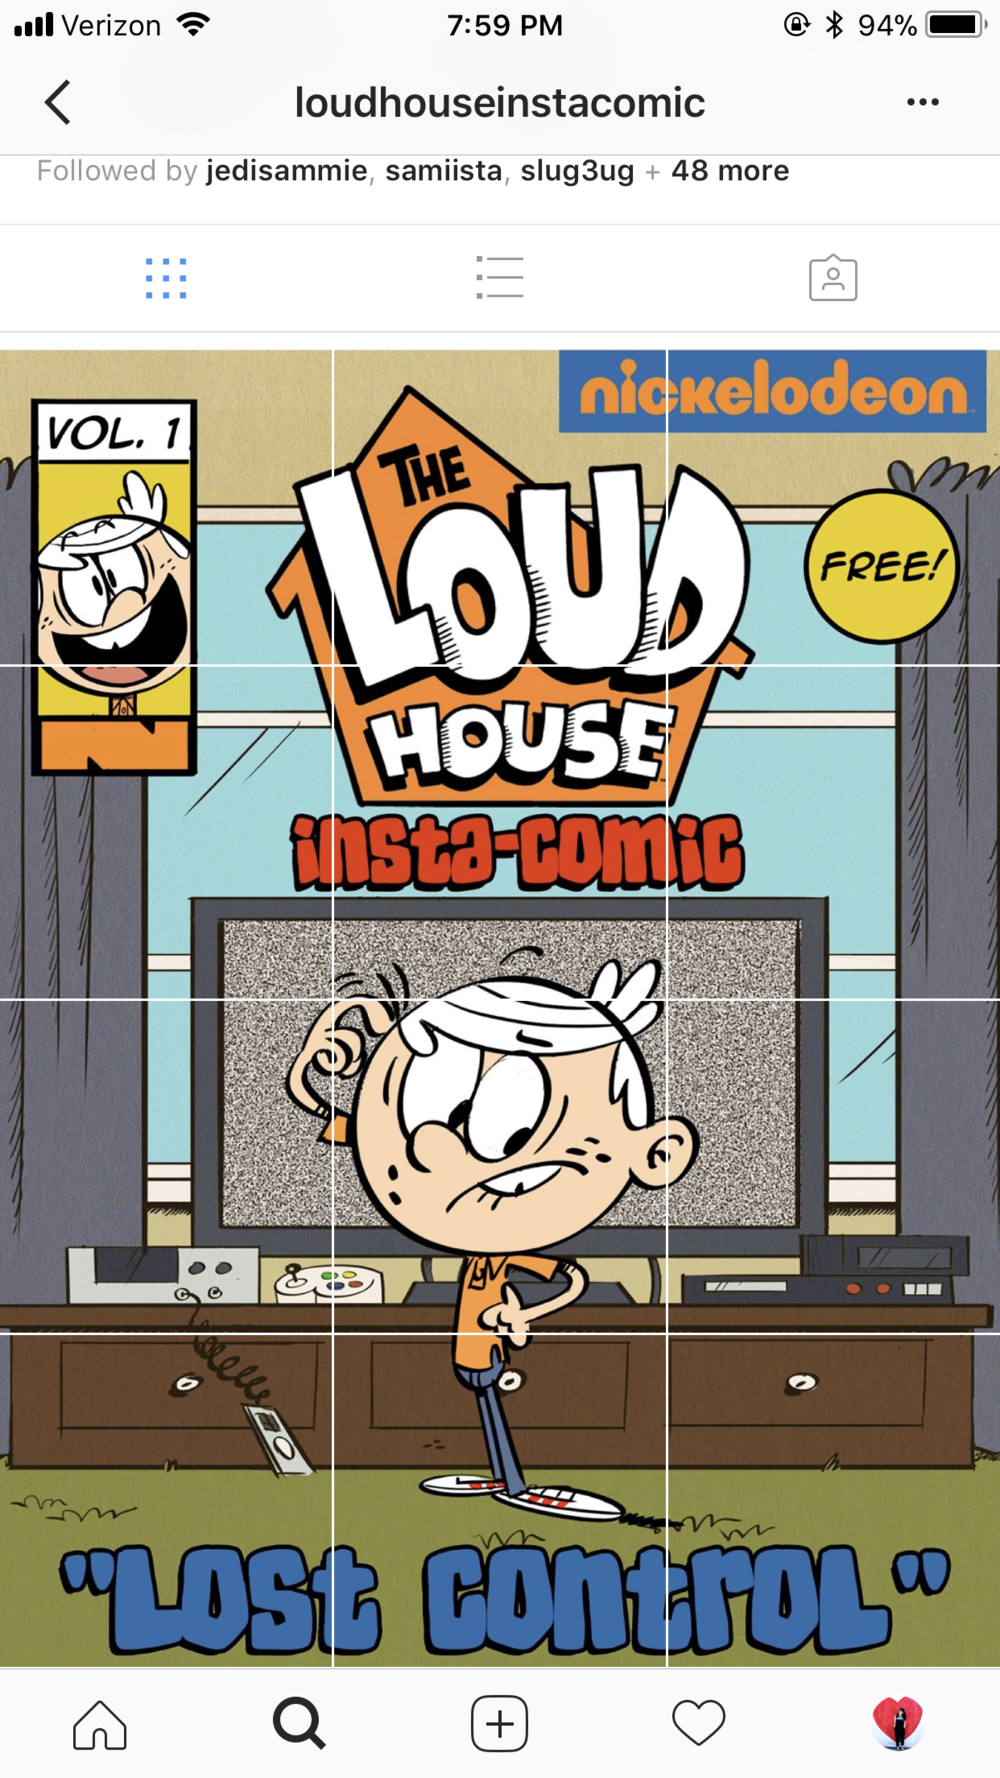 The Loud House Instacomic